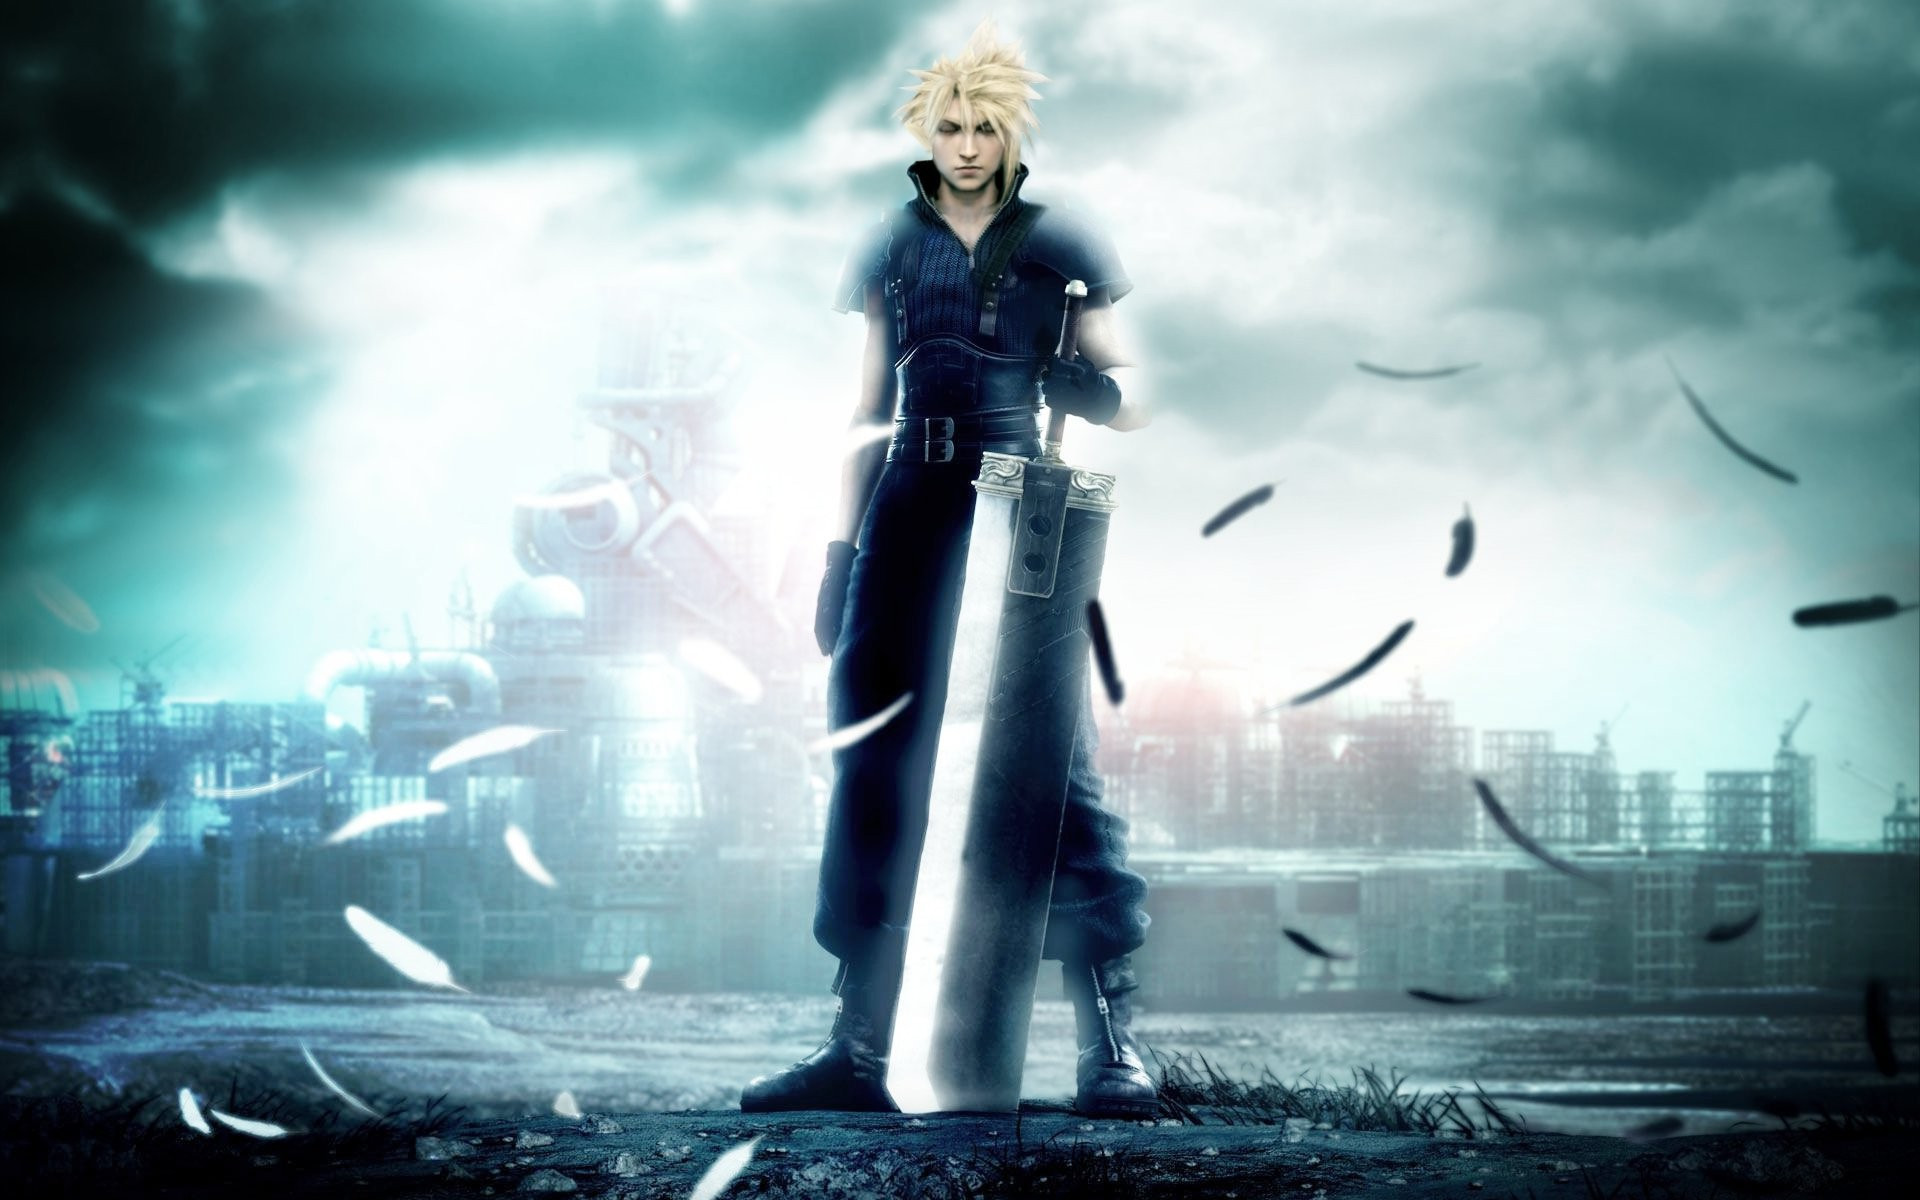 1920x1200 Final Fantasy VII HD Wallpaper 3 - 1920 X 1200